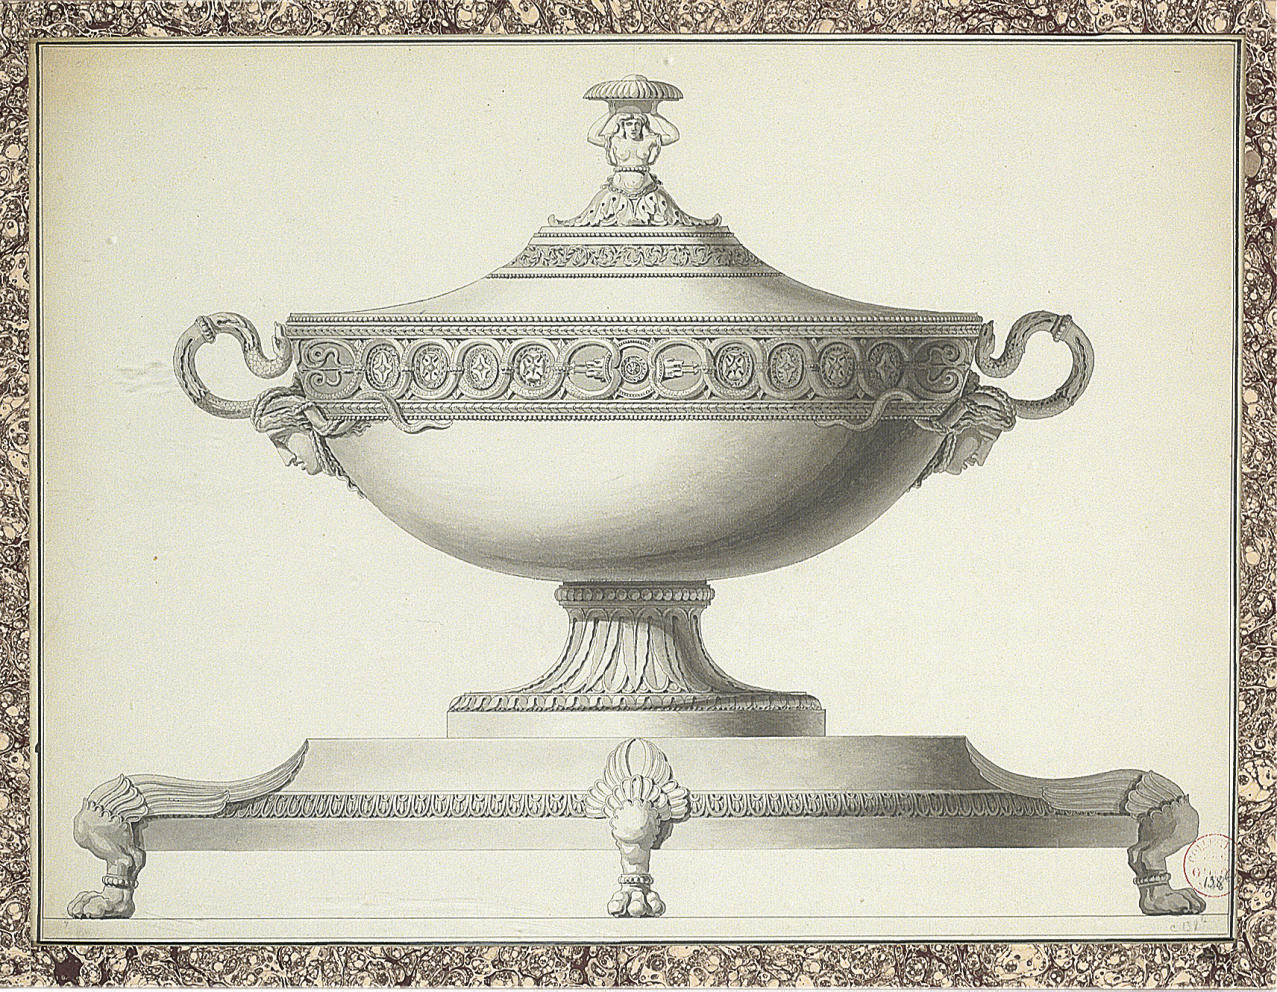 Design for a tureen with snake handles on a platter with lion's paw feet